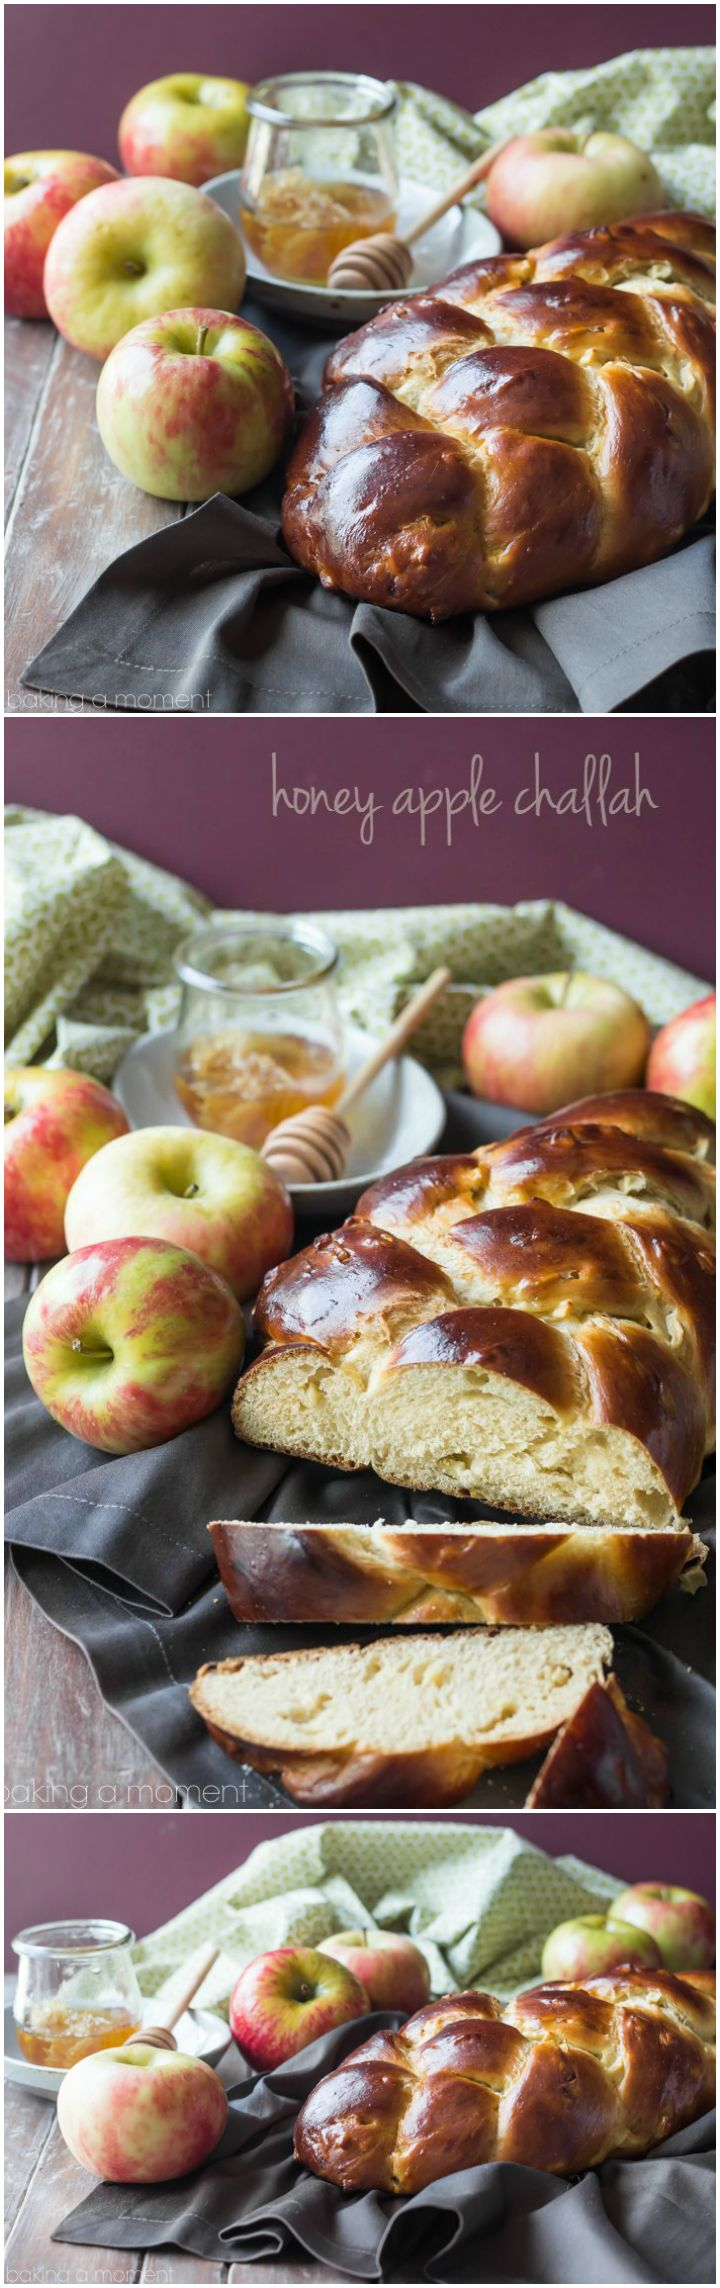 Honey Apple Challah- start off a sweet New Year with this slightly sweet, moist, and egg-y bread recipe.